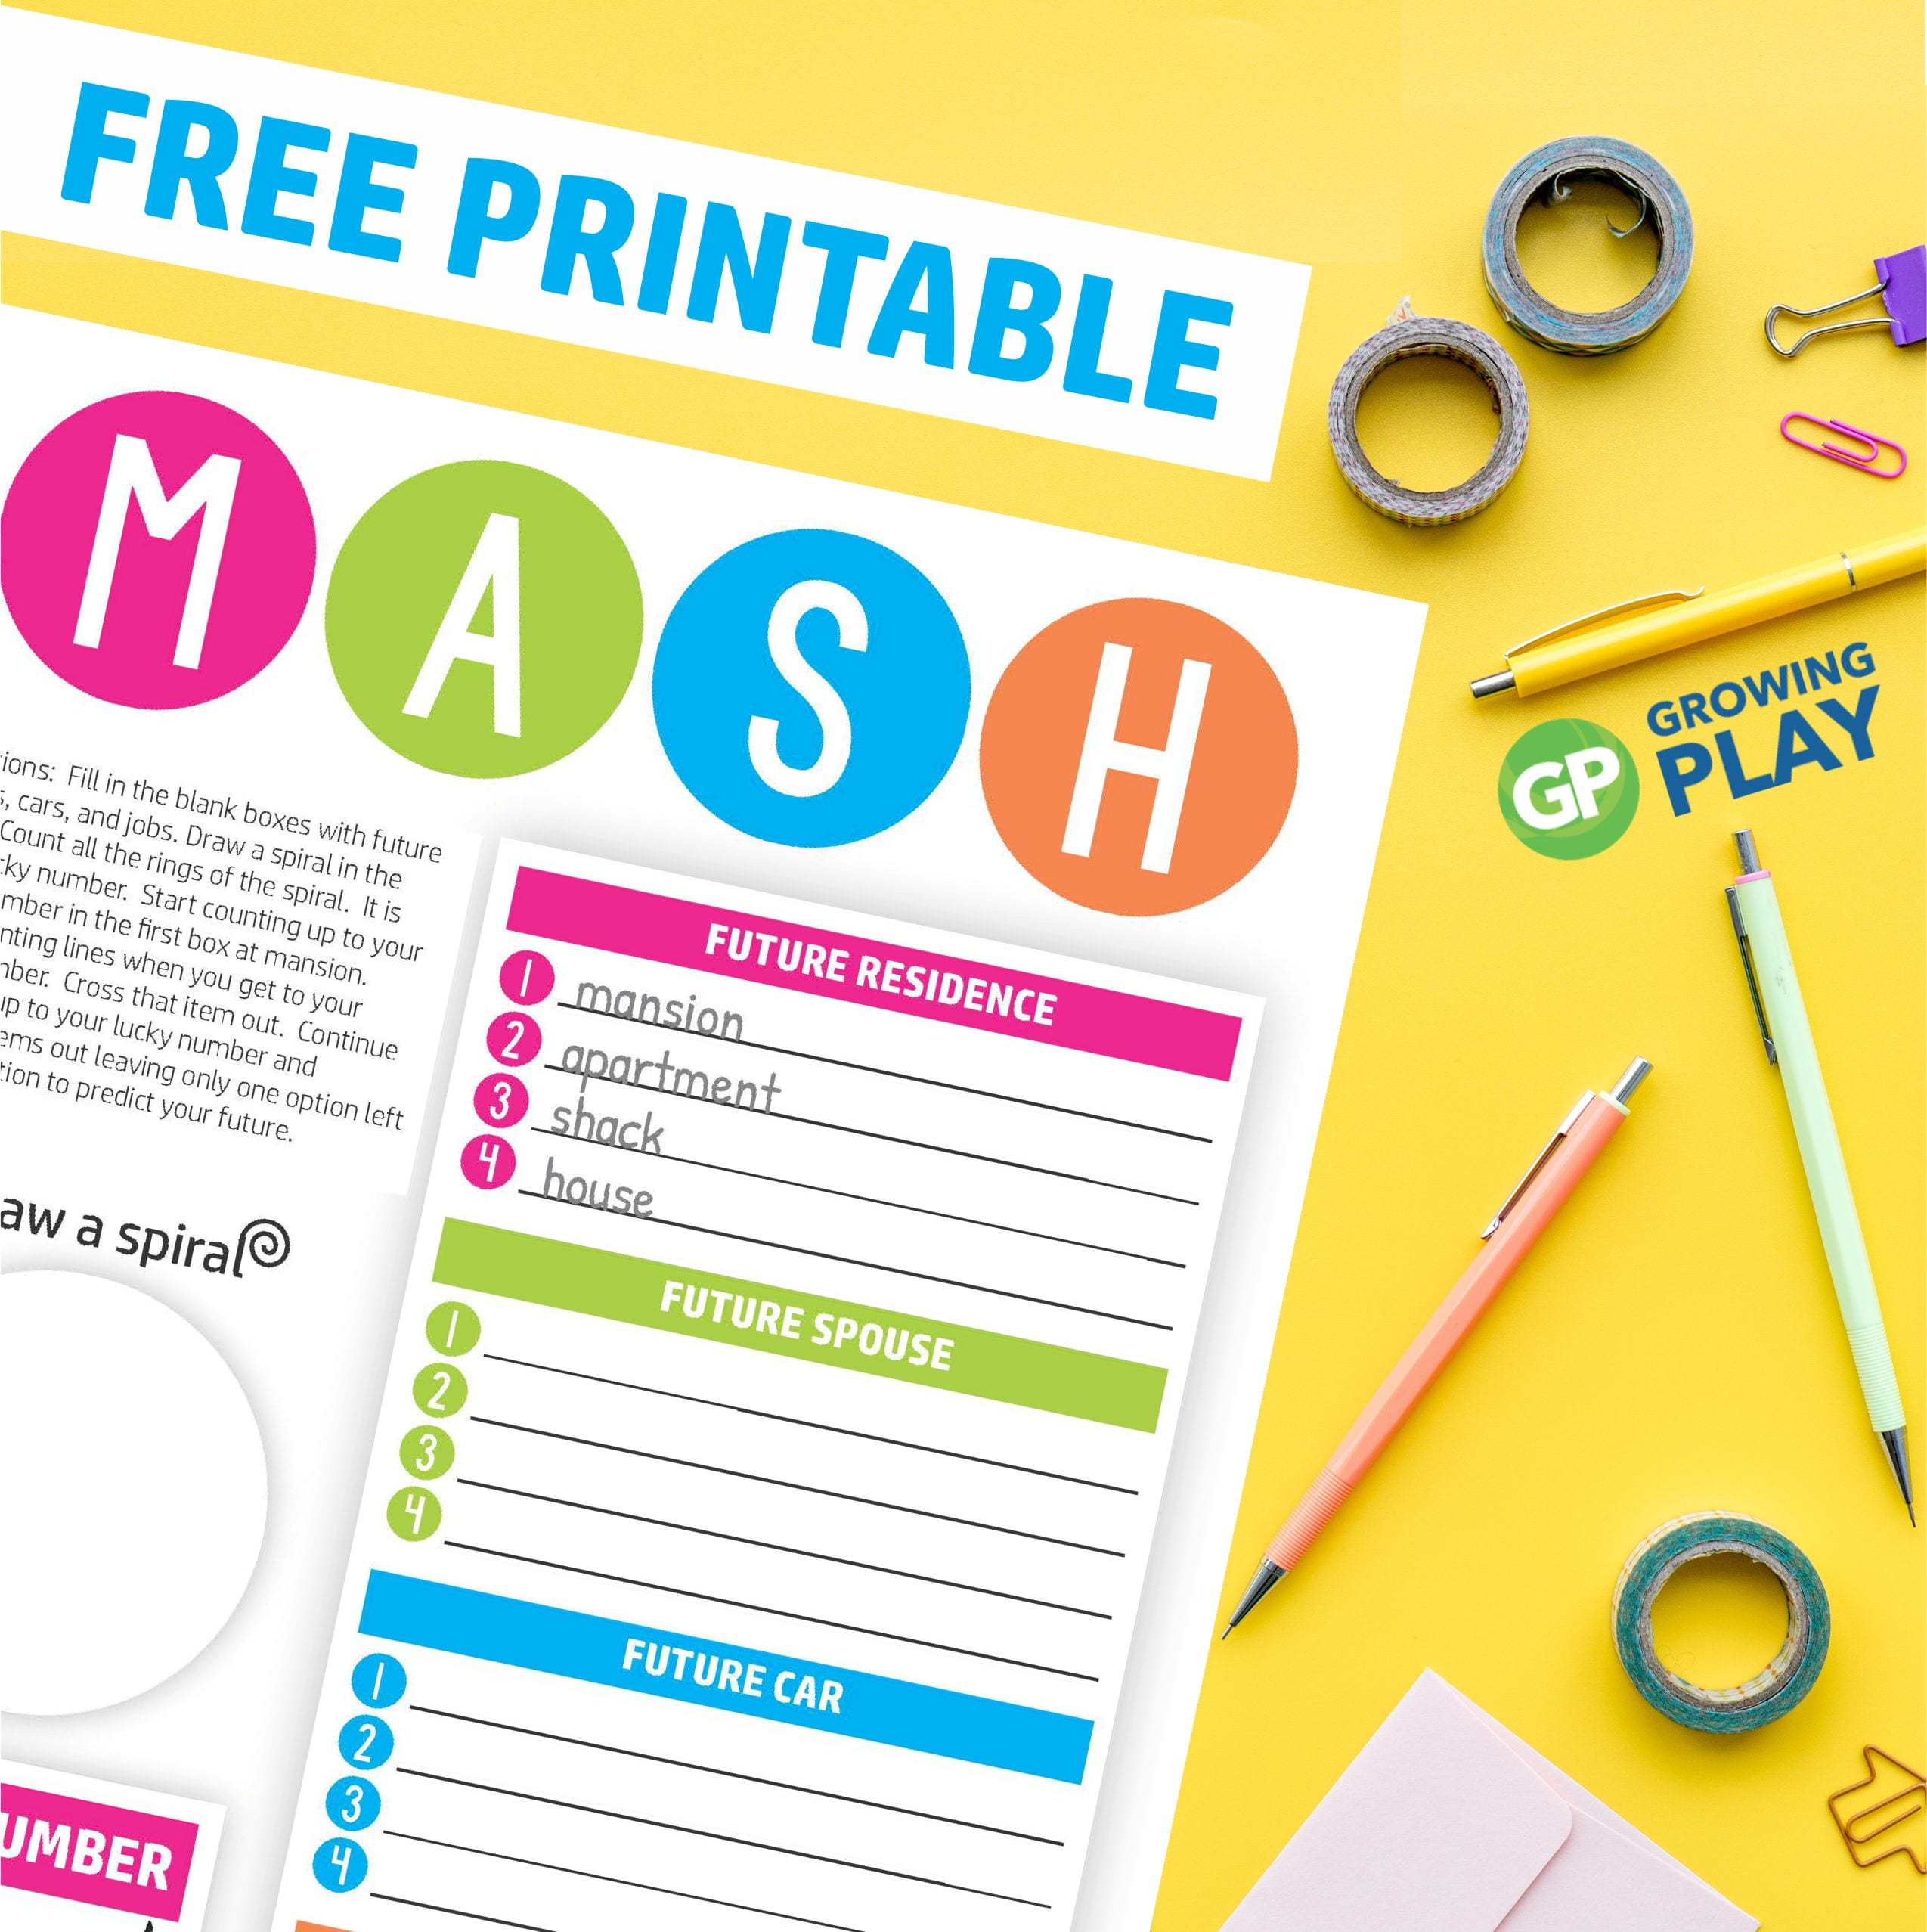 Do you know how to play MASH? It is a fun, quick activity to predict your future with 100% accuracy (just kidding but still FUN)!